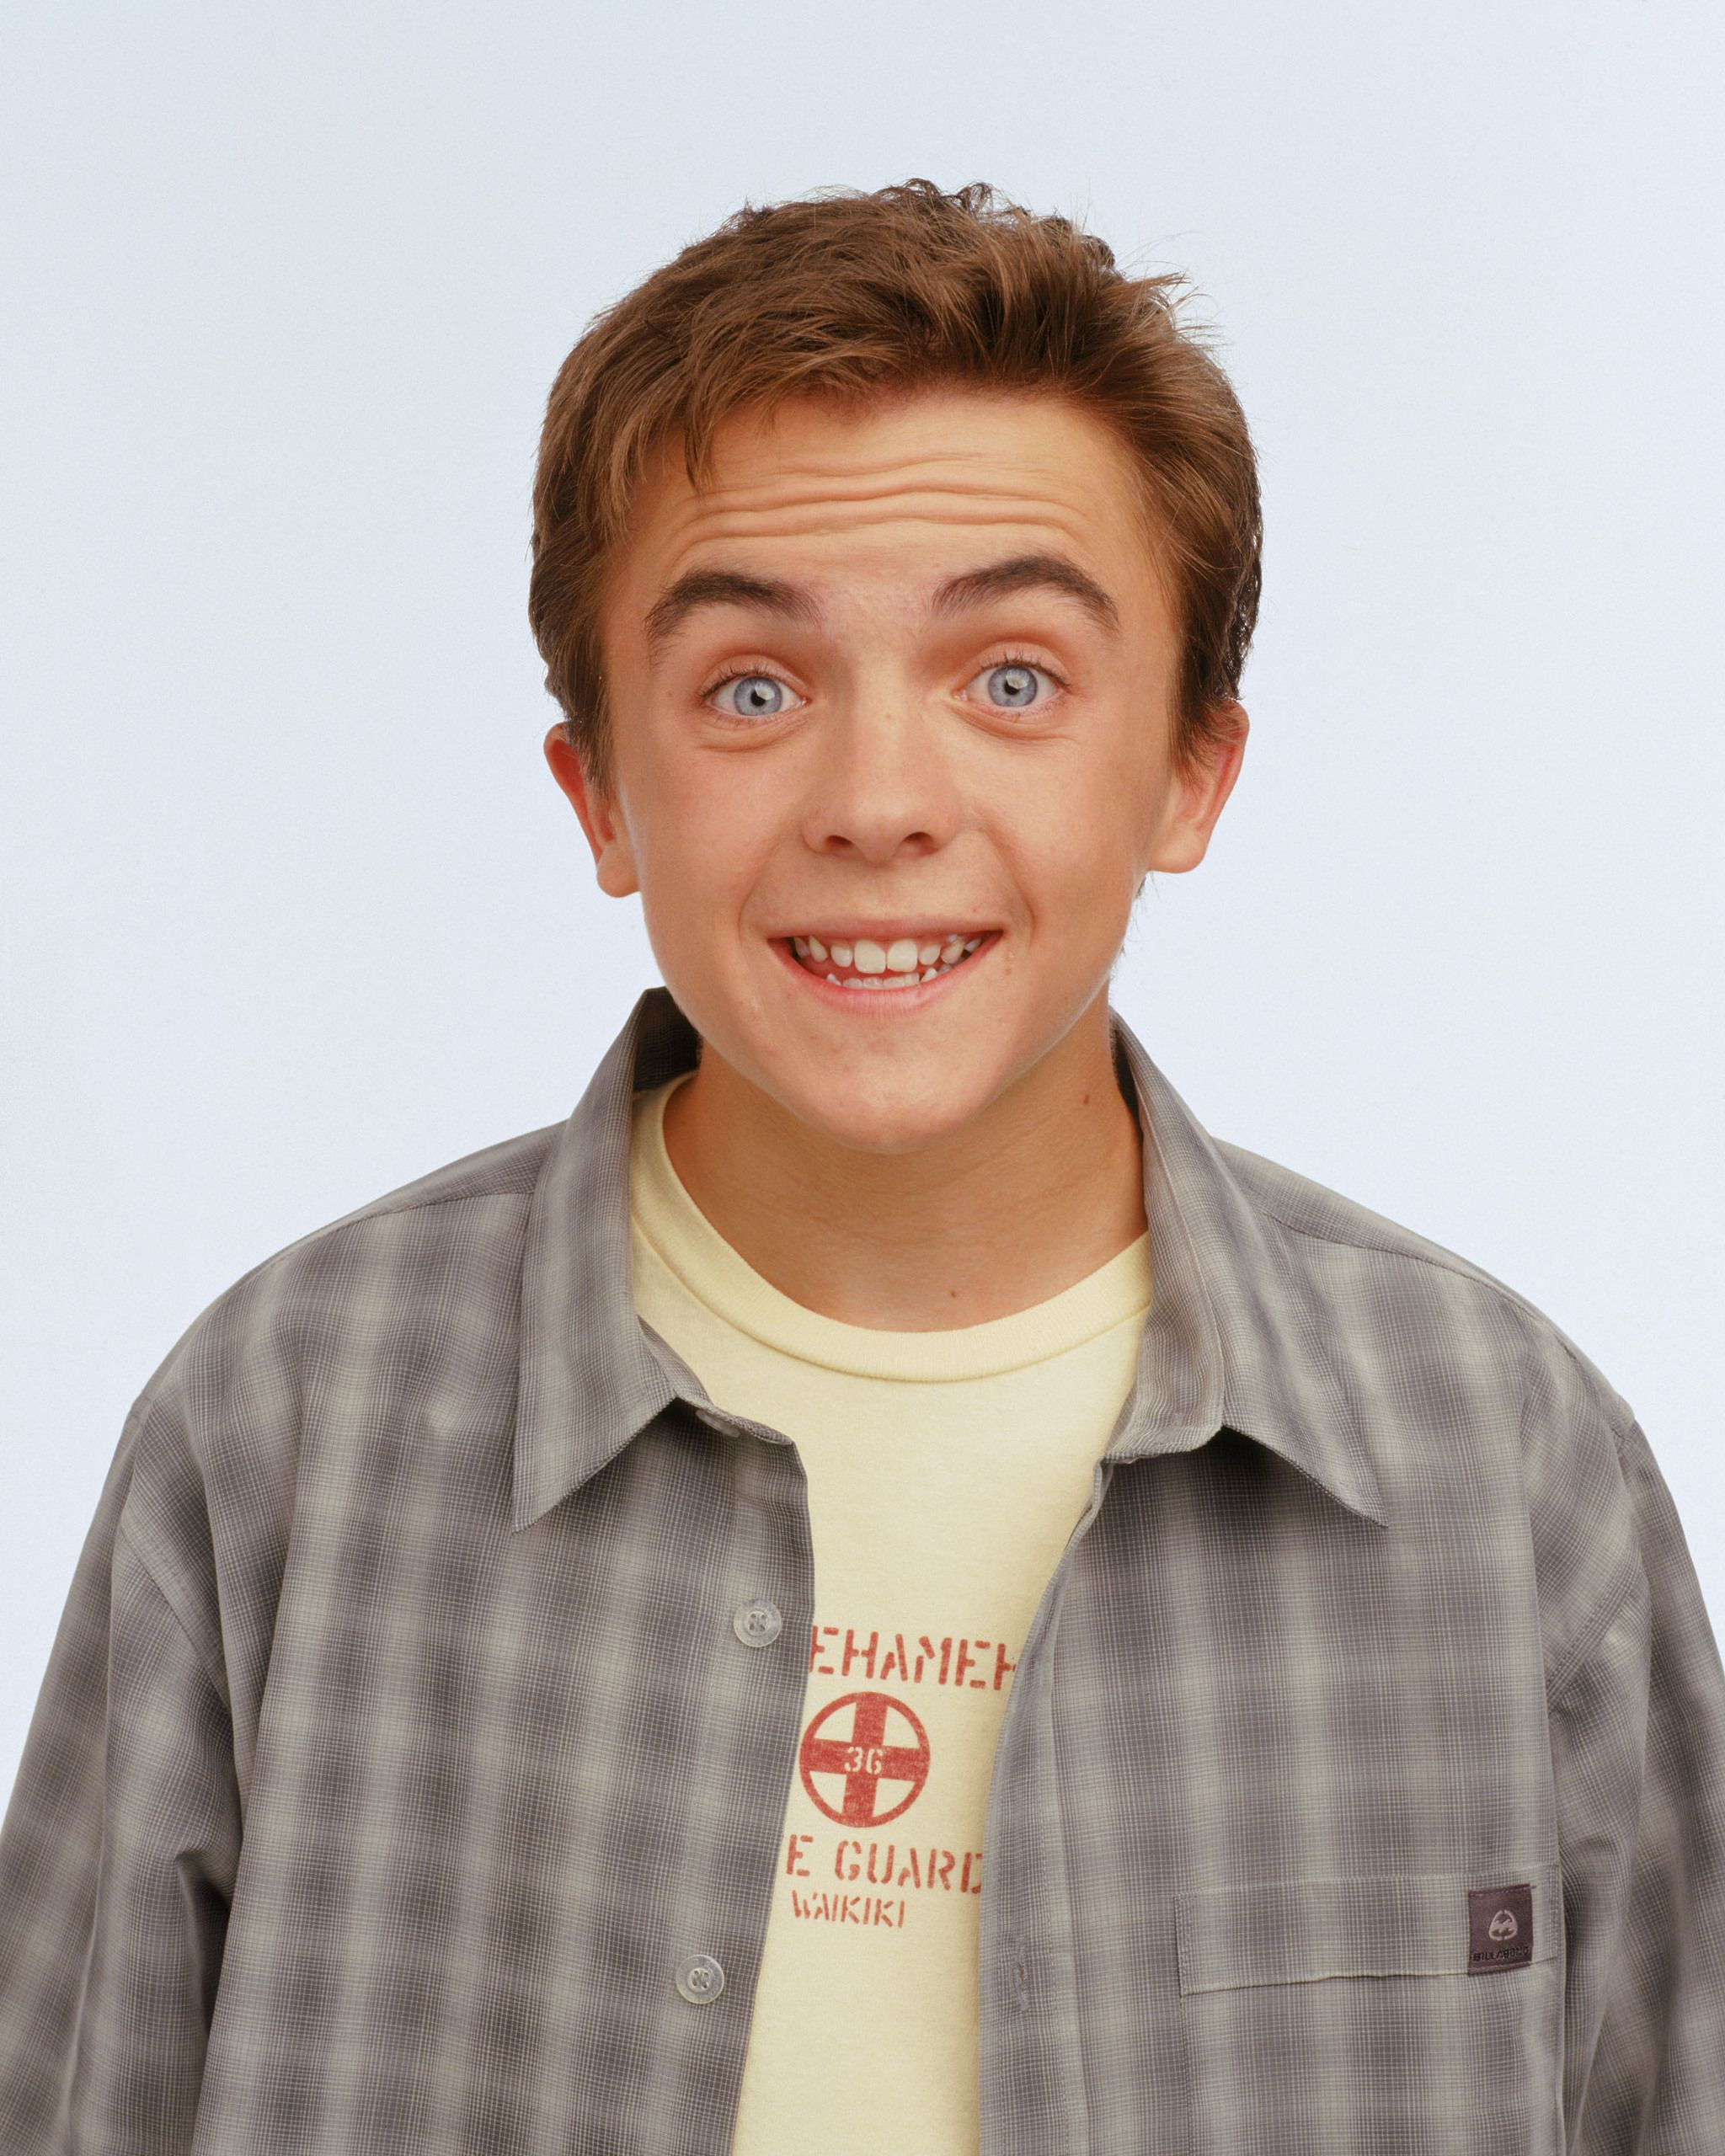 frankie muniz 2005frankie muniz 2016, frankie muniz height, frankie muniz 2017, frankie muniz twitter, frankie muniz imdb, frankie muniz 2005, frankie muniz 2015, frankie muniz toyota, frankie muniz auto, frankie muniz net worth, frankie muniz clippers, frankie muniz movie, frankie muniz instagram, frankie muniz reddit ama, frankie muniz bryan cranston, frankie muniz wife, frankie muniz malcolm in the middle, frankie muniz aaron paul